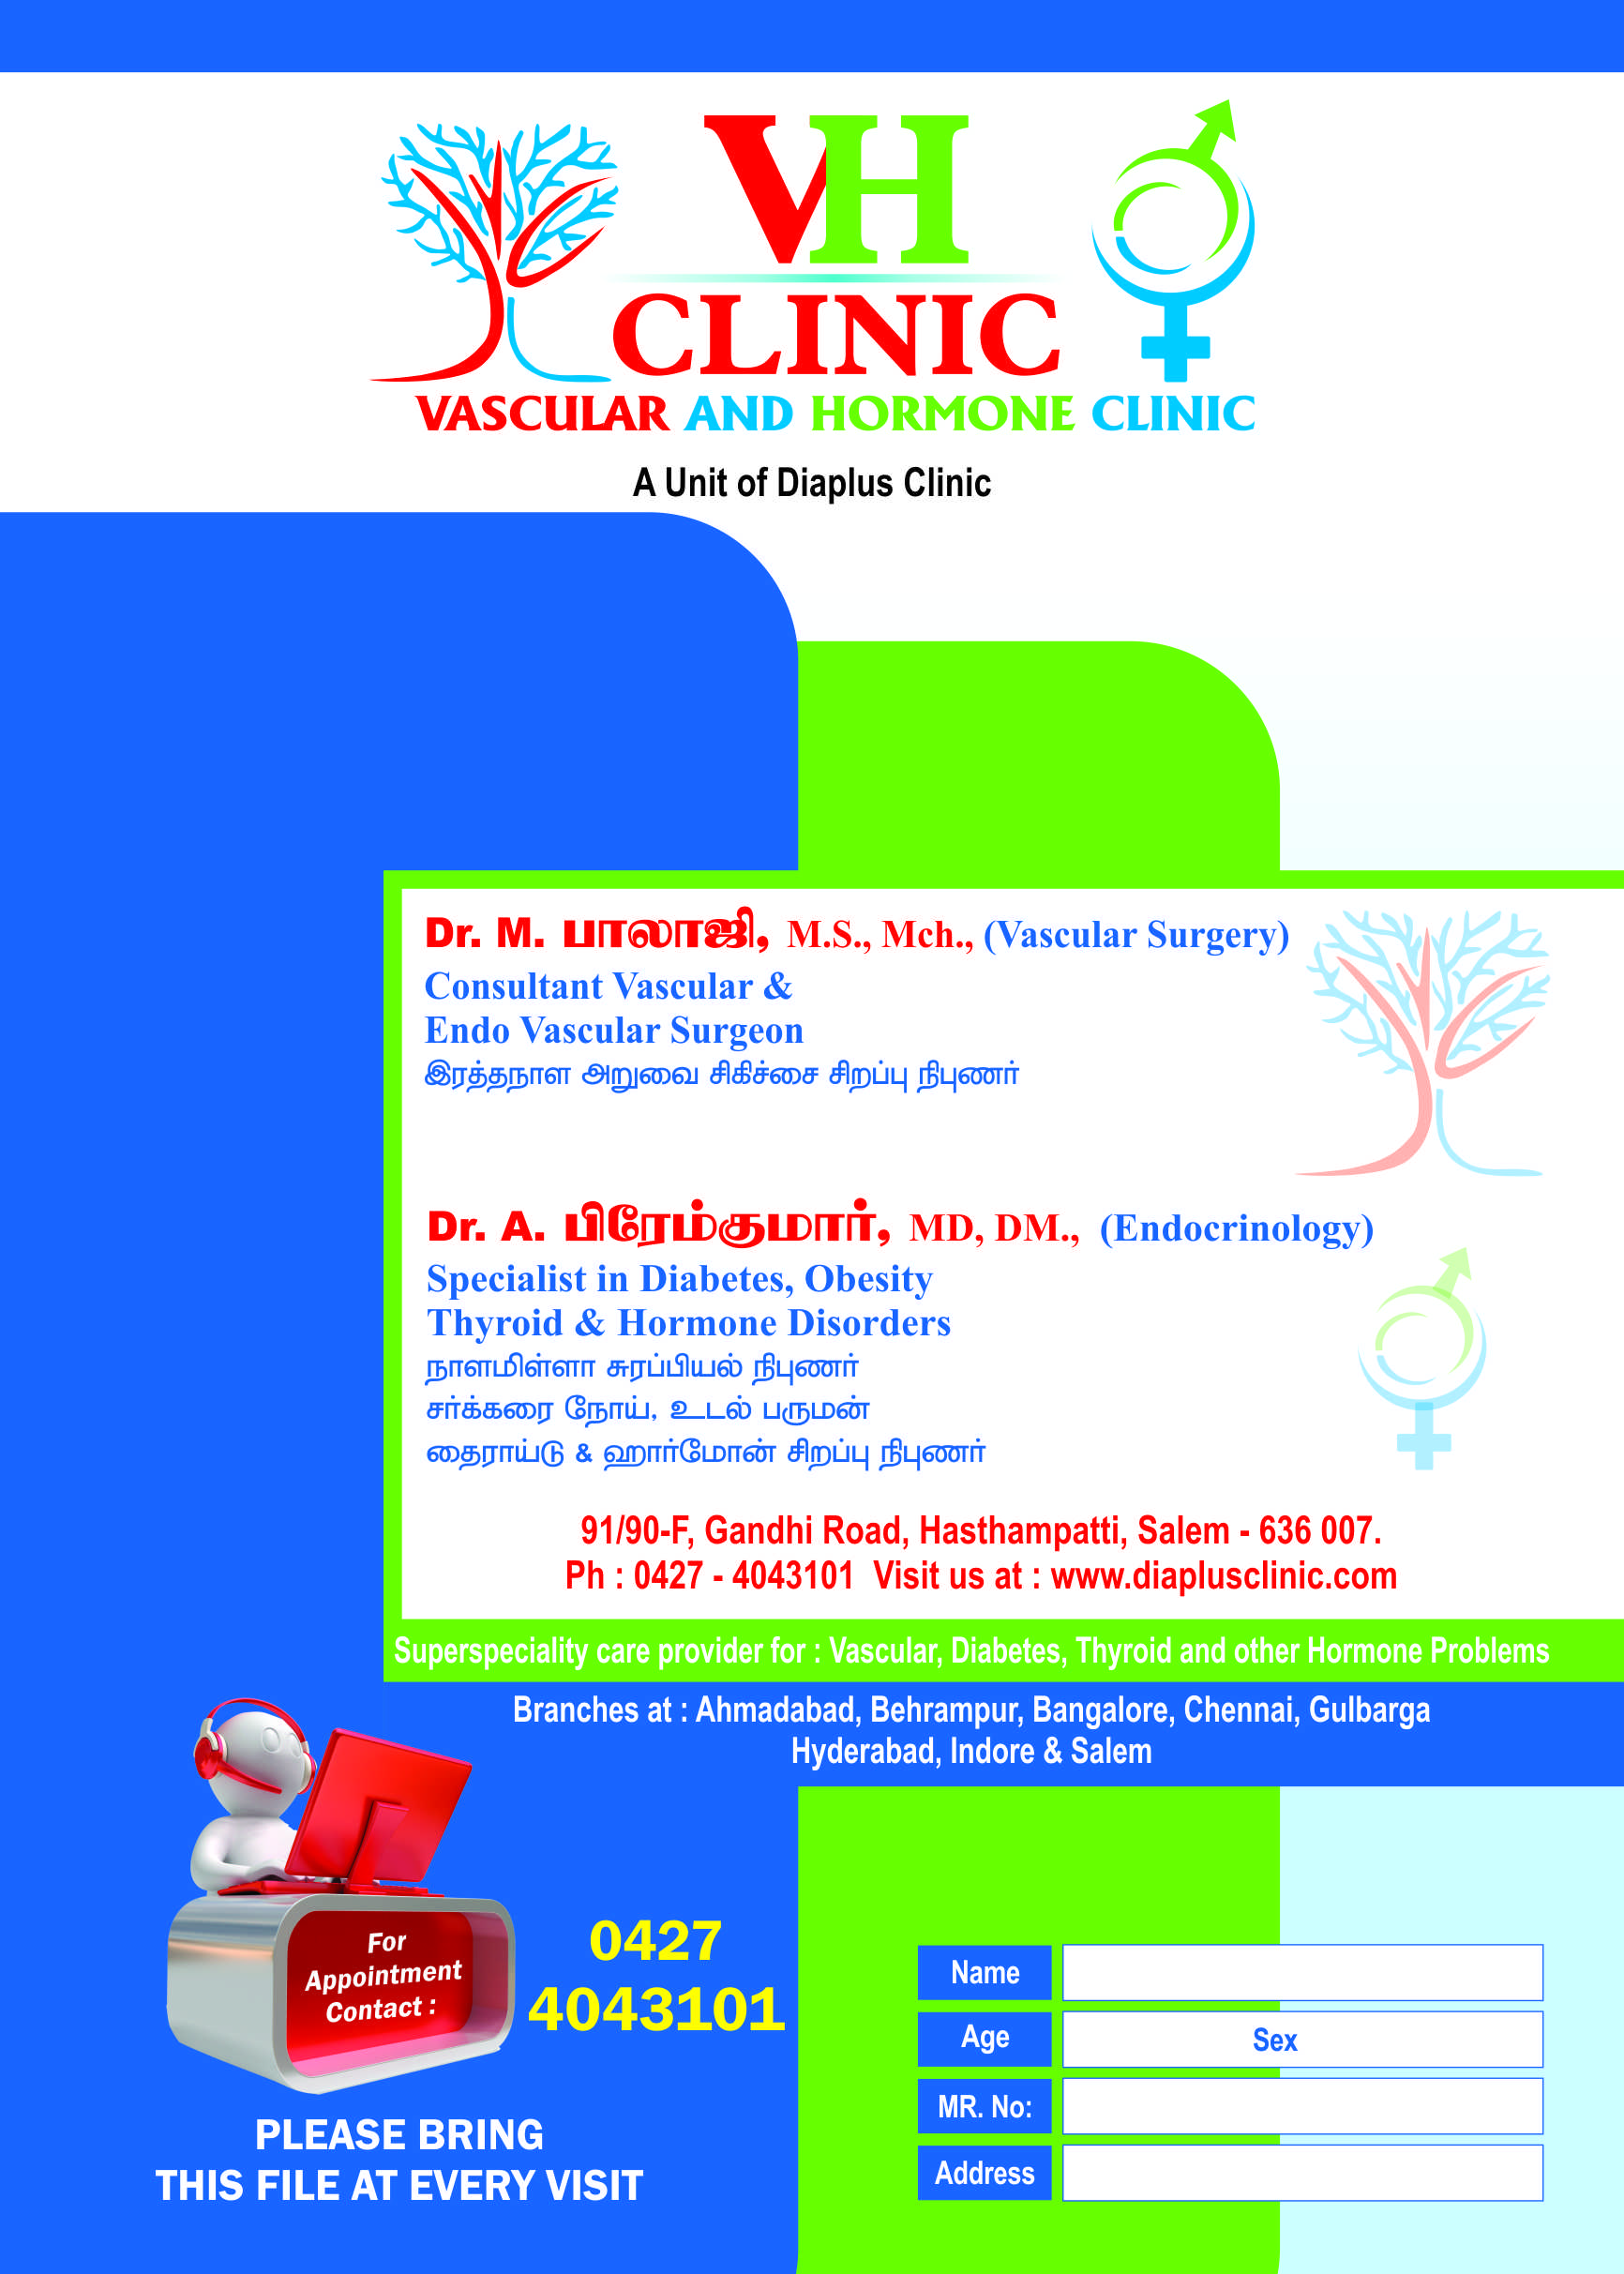 Vh Clinic Vascular and Hormone Clinic